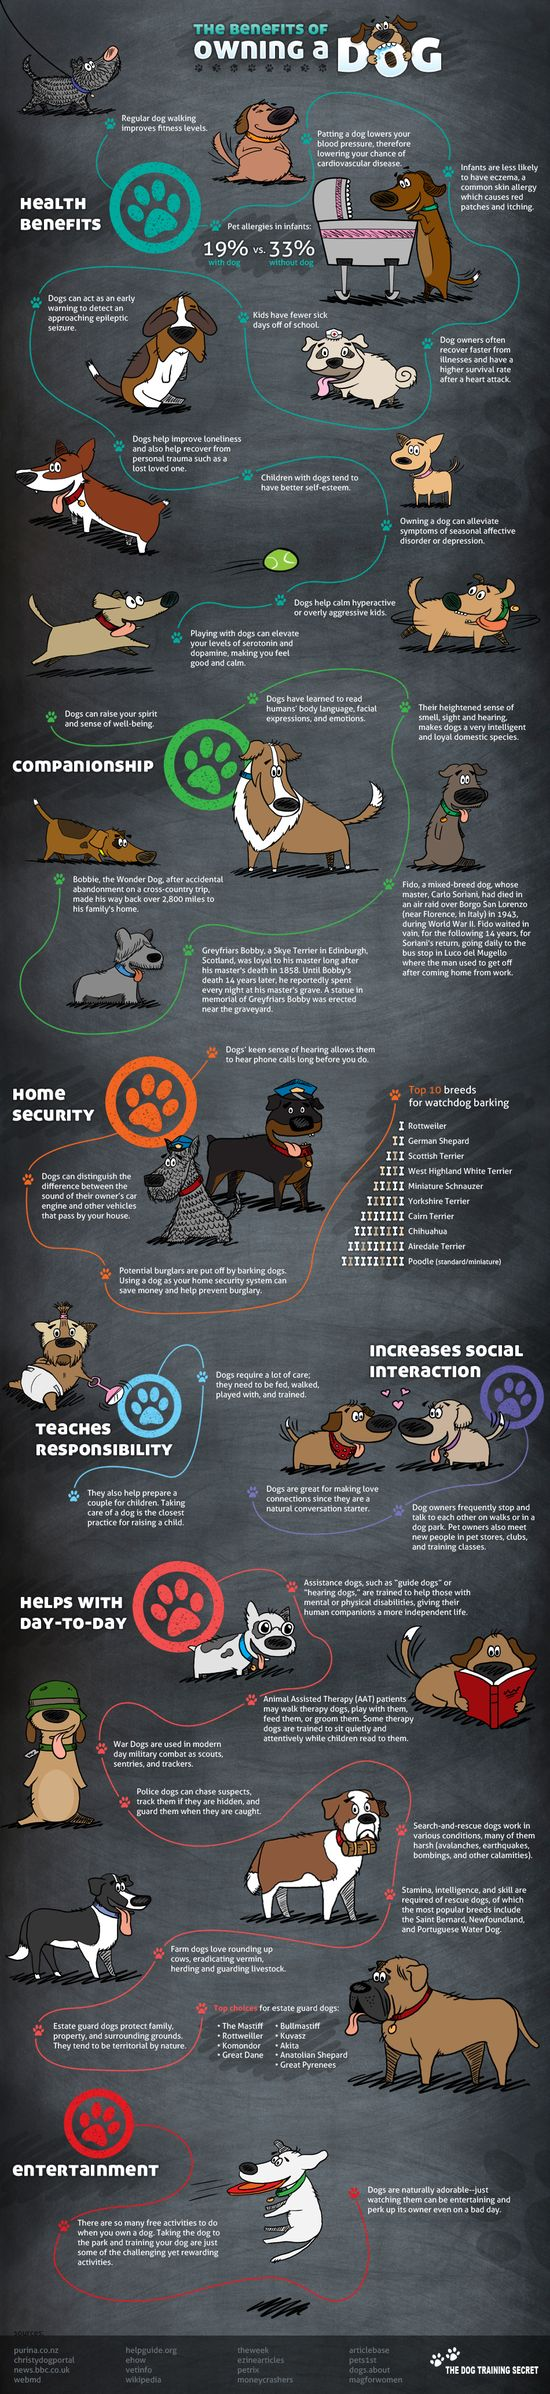 Benefits of Owning A Dog - What most of us already pet owners, know and LOVE! ;)